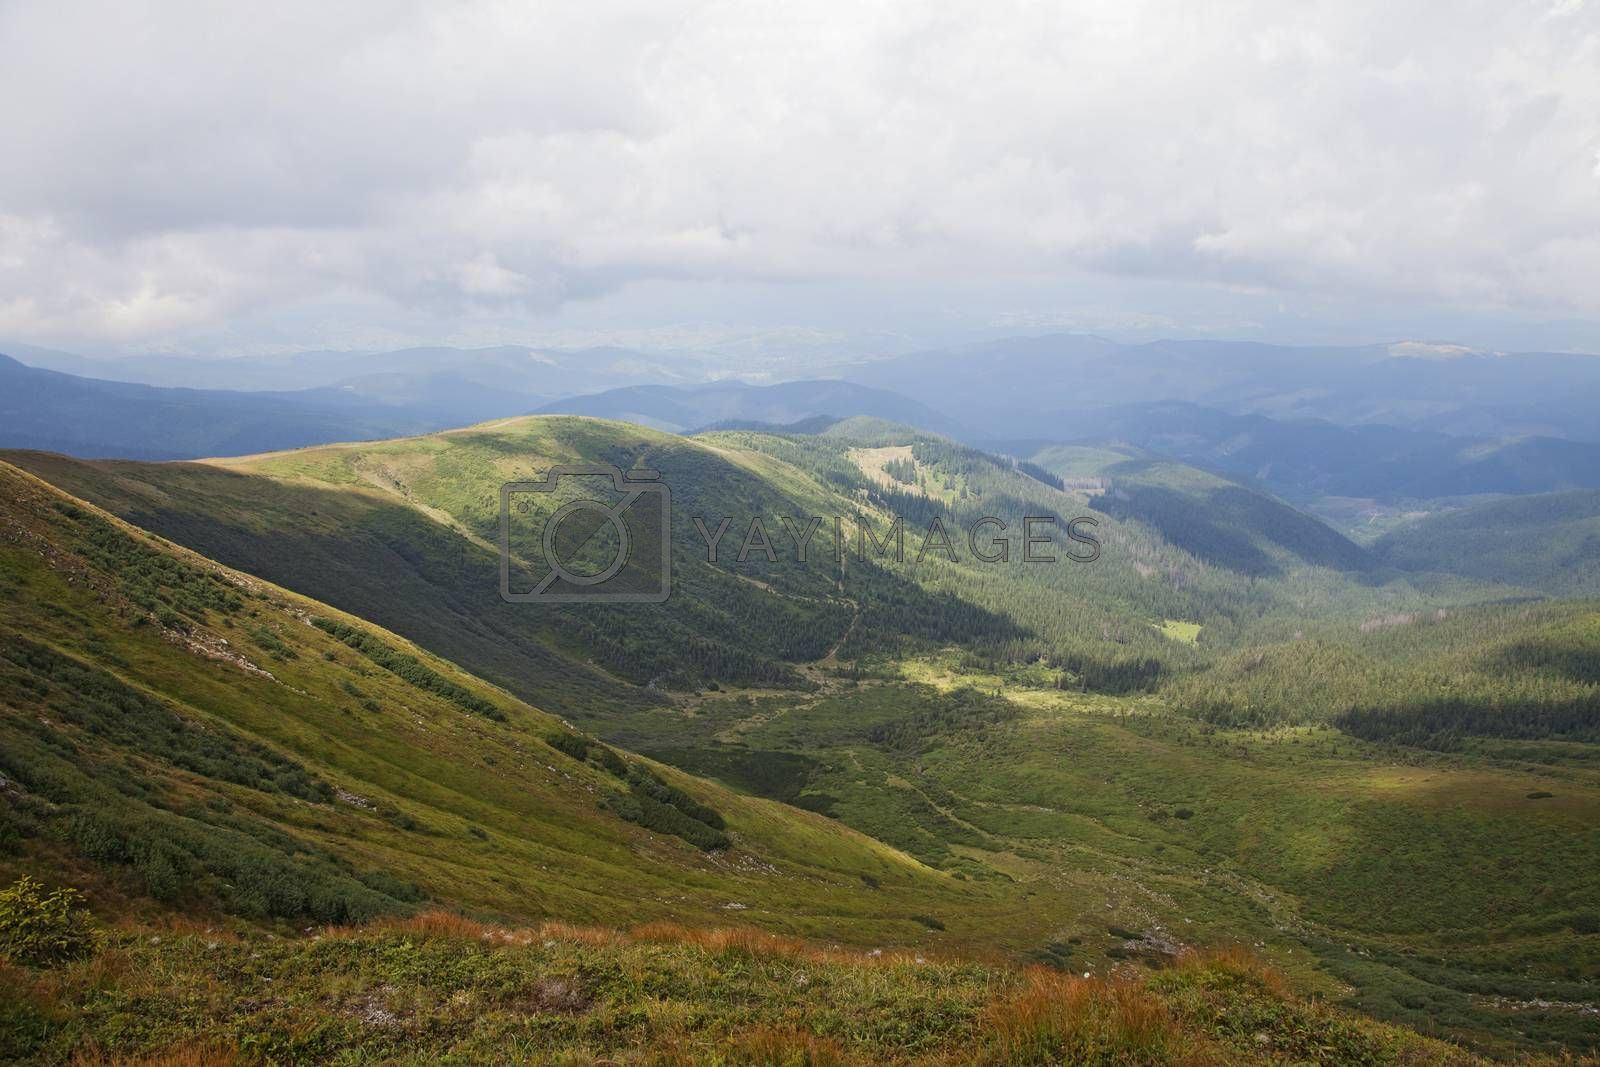 Carpathian mountains by Goodday